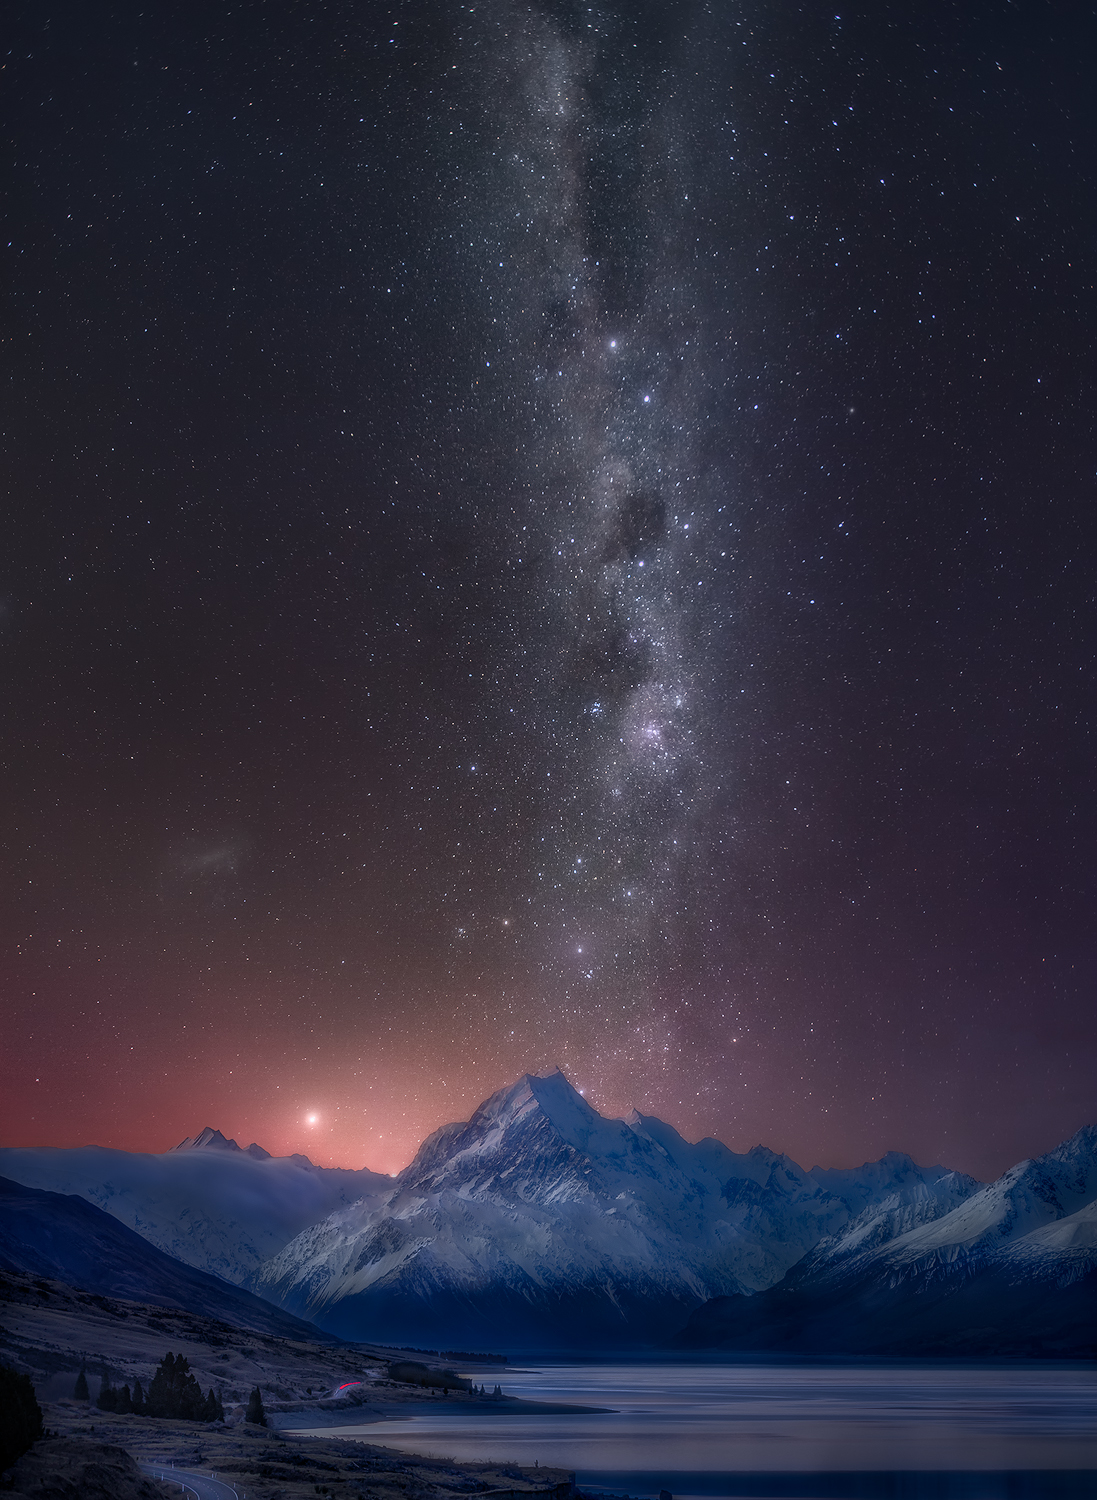 Aoraki Mount Cook National Park at Night Astro, New Zealand 6 day tour | We Are Raw Photography